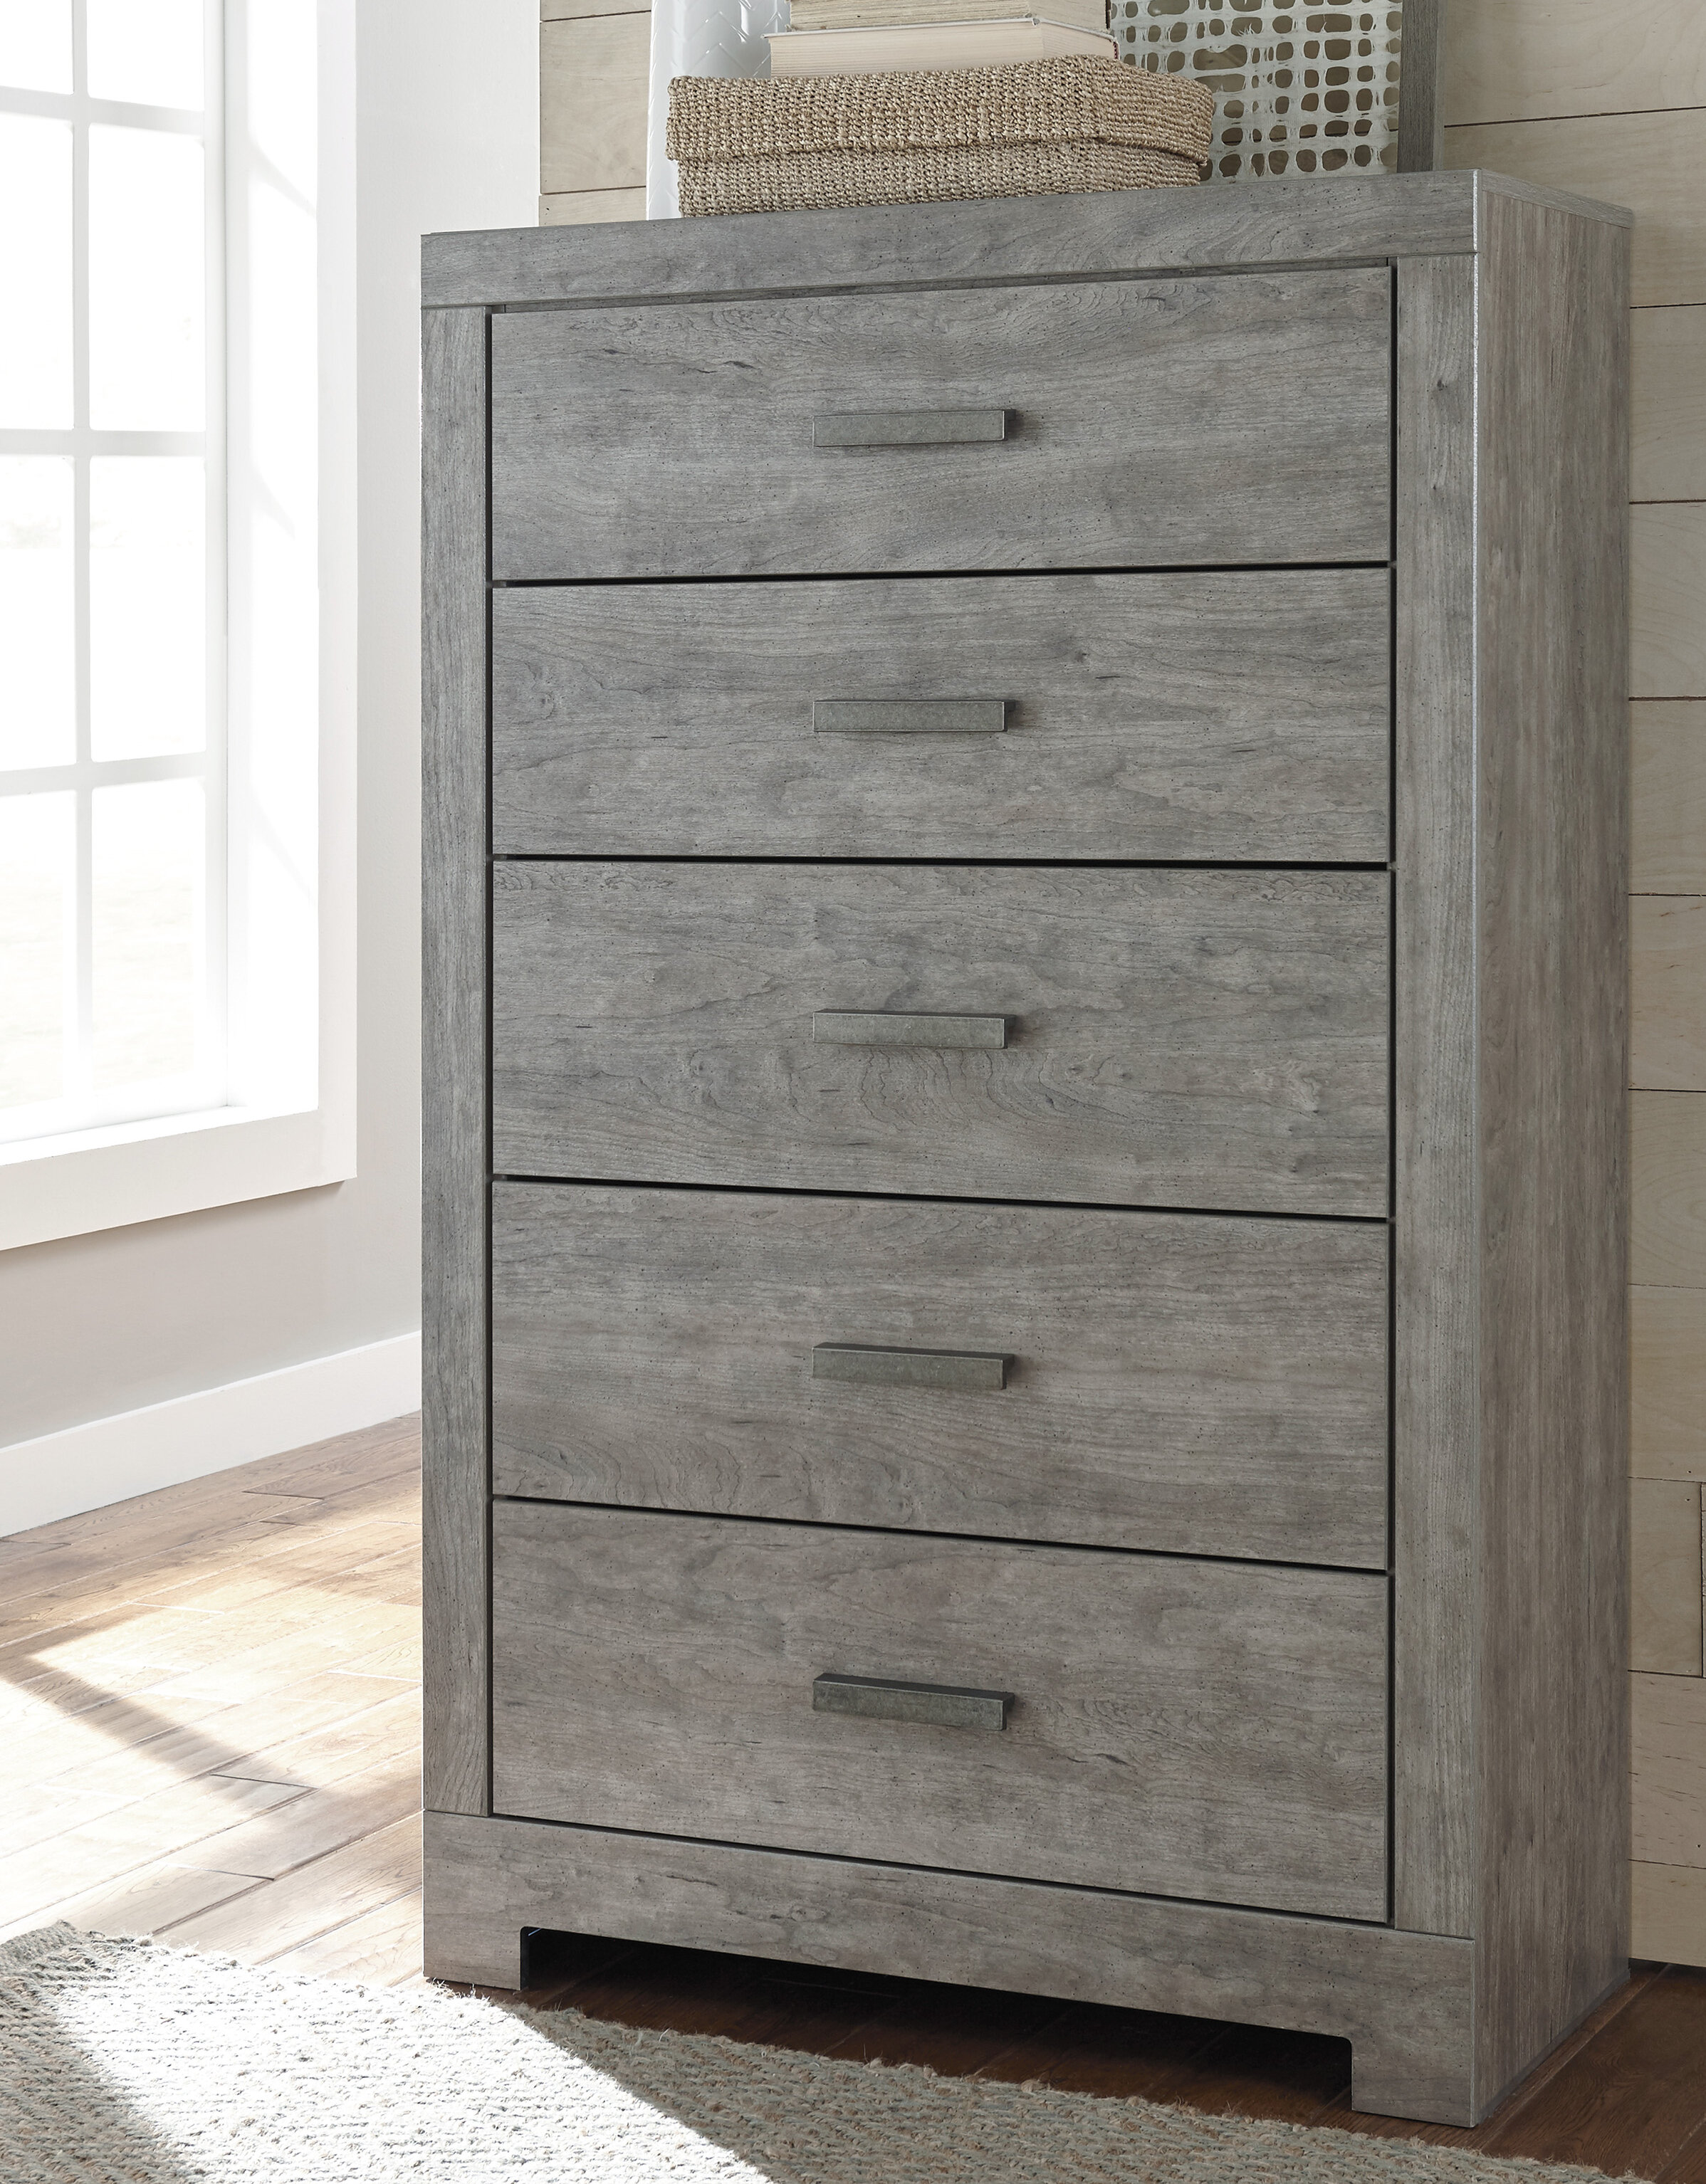 dresser set oak today of mirror and seashore garden home free furniture wood shipping product overstock america piece weathered